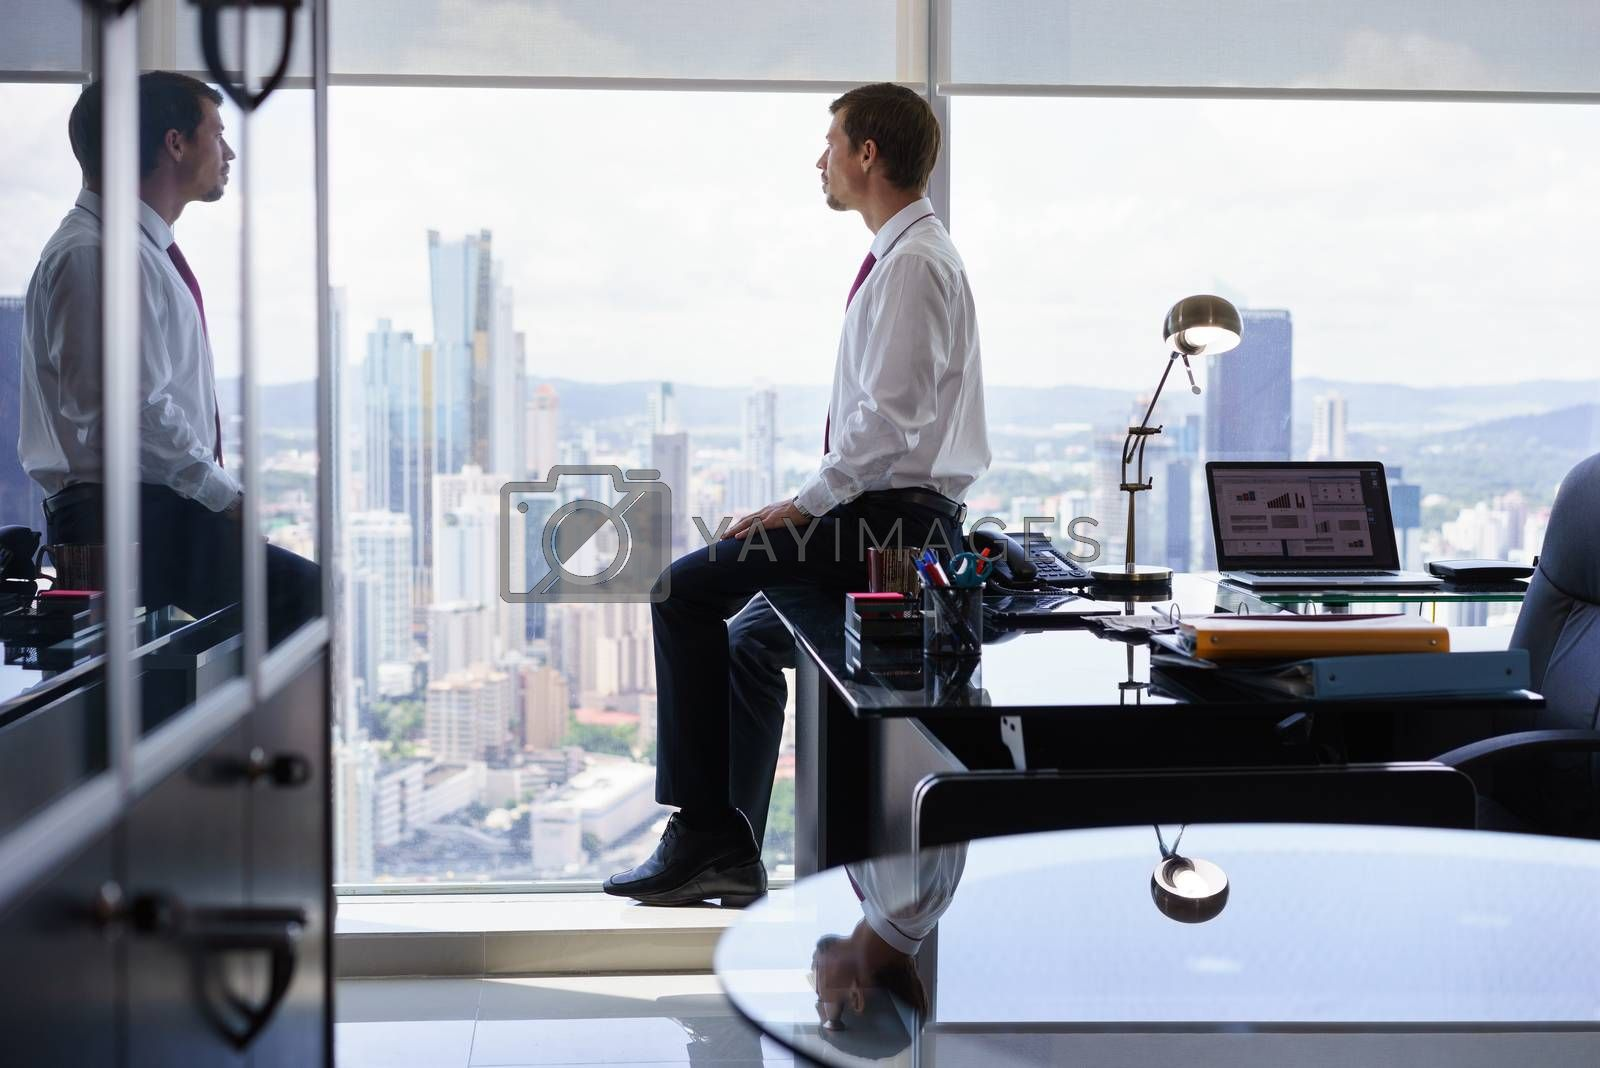 Adult businessman sitting on desk in modern office and looking out of the window, with pensive expression. The man contemplates the city and skyscrapers.